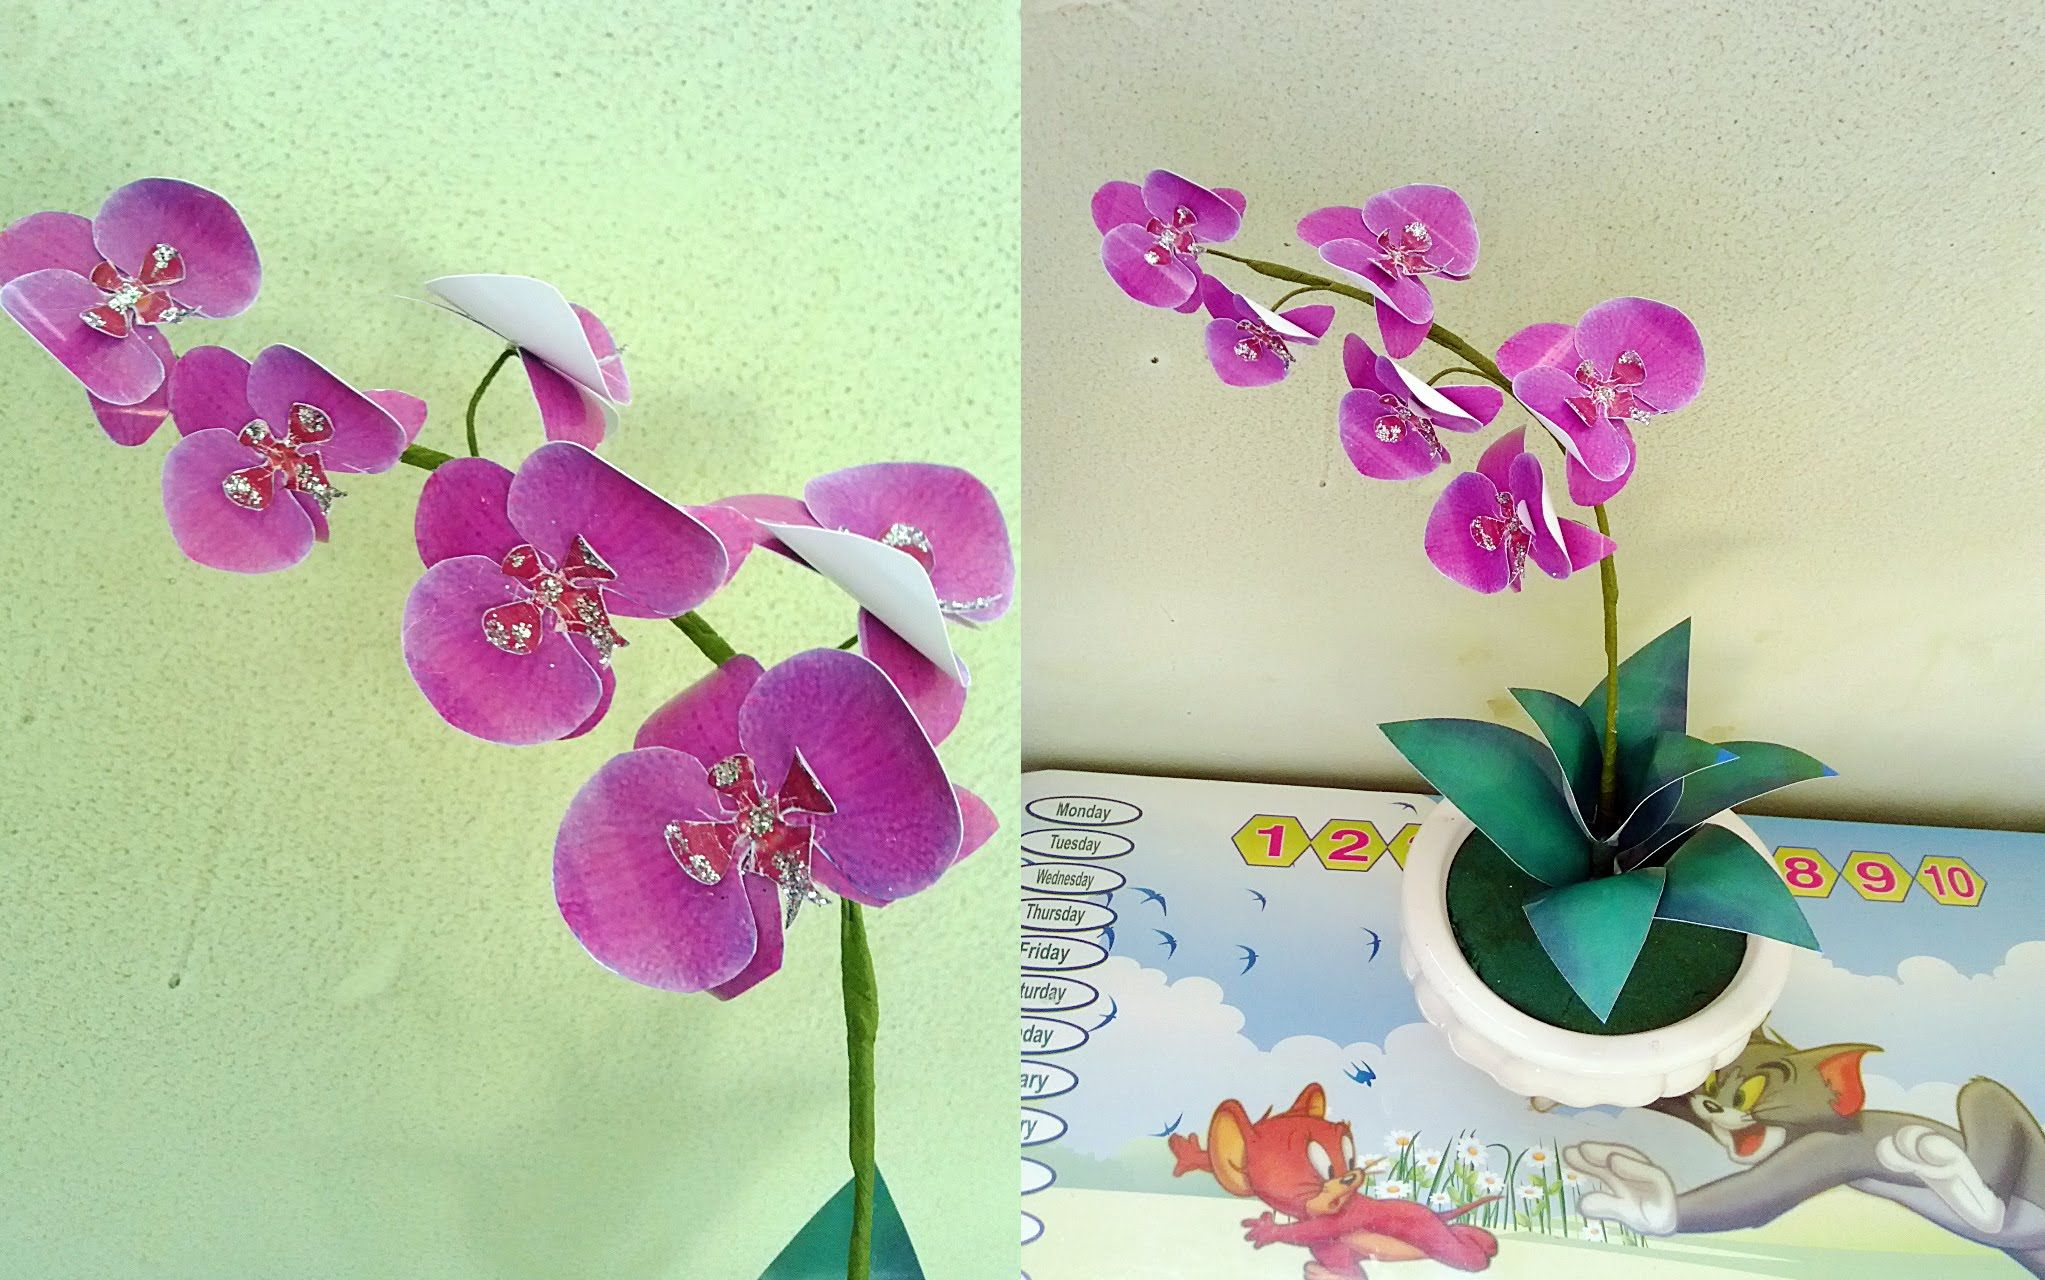 How To Make Phalaenopsis Orchids Paper Flower Hng Dn Lm Hoa